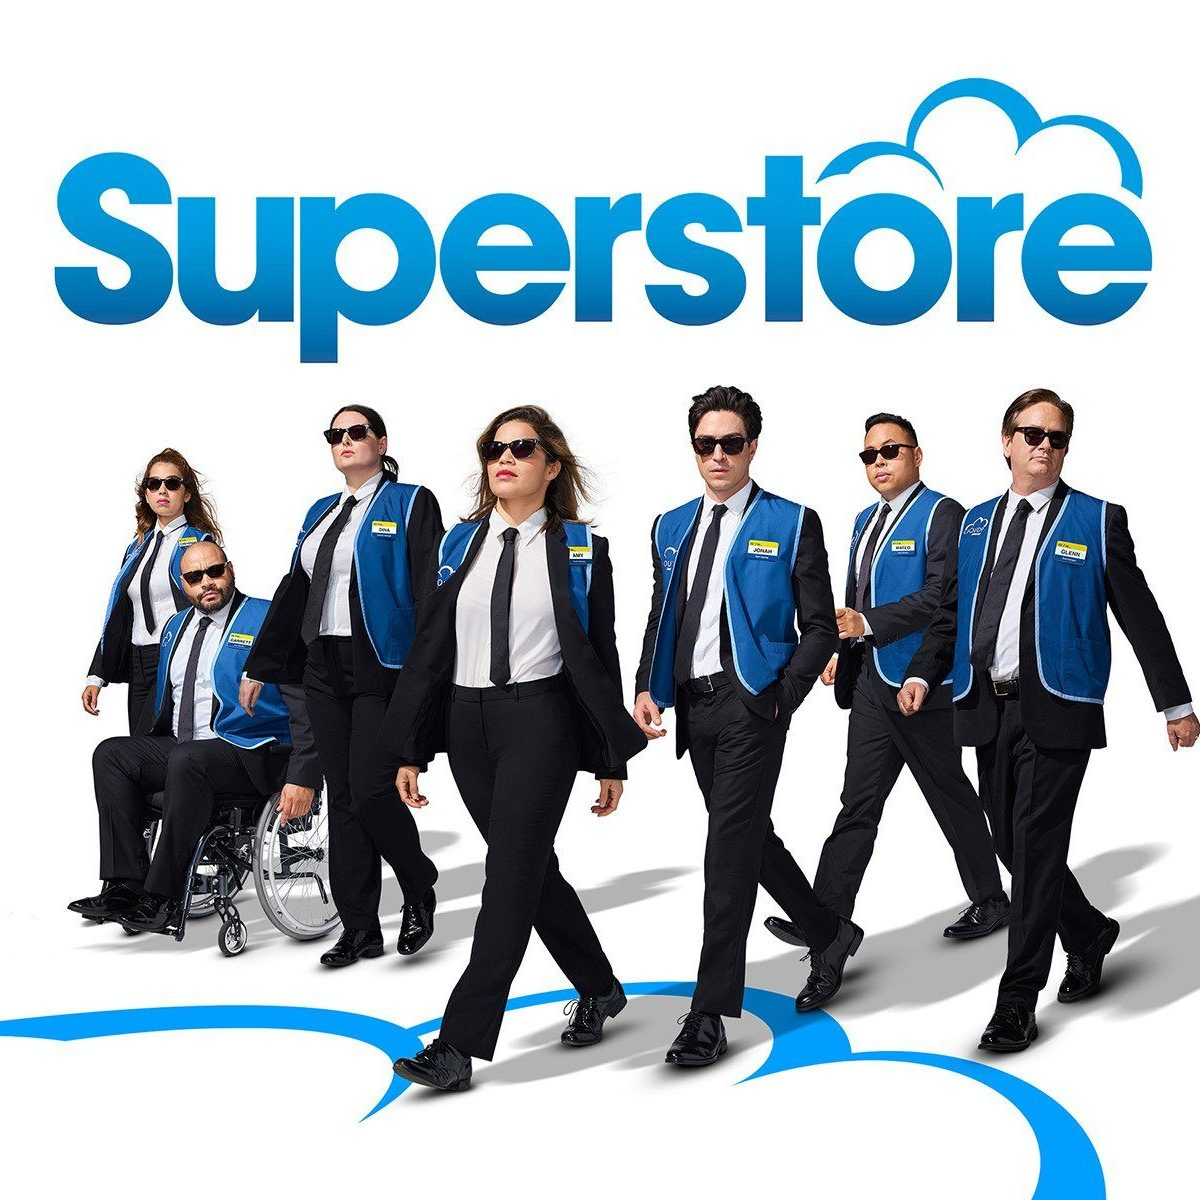 Superstore Season 3 Promo